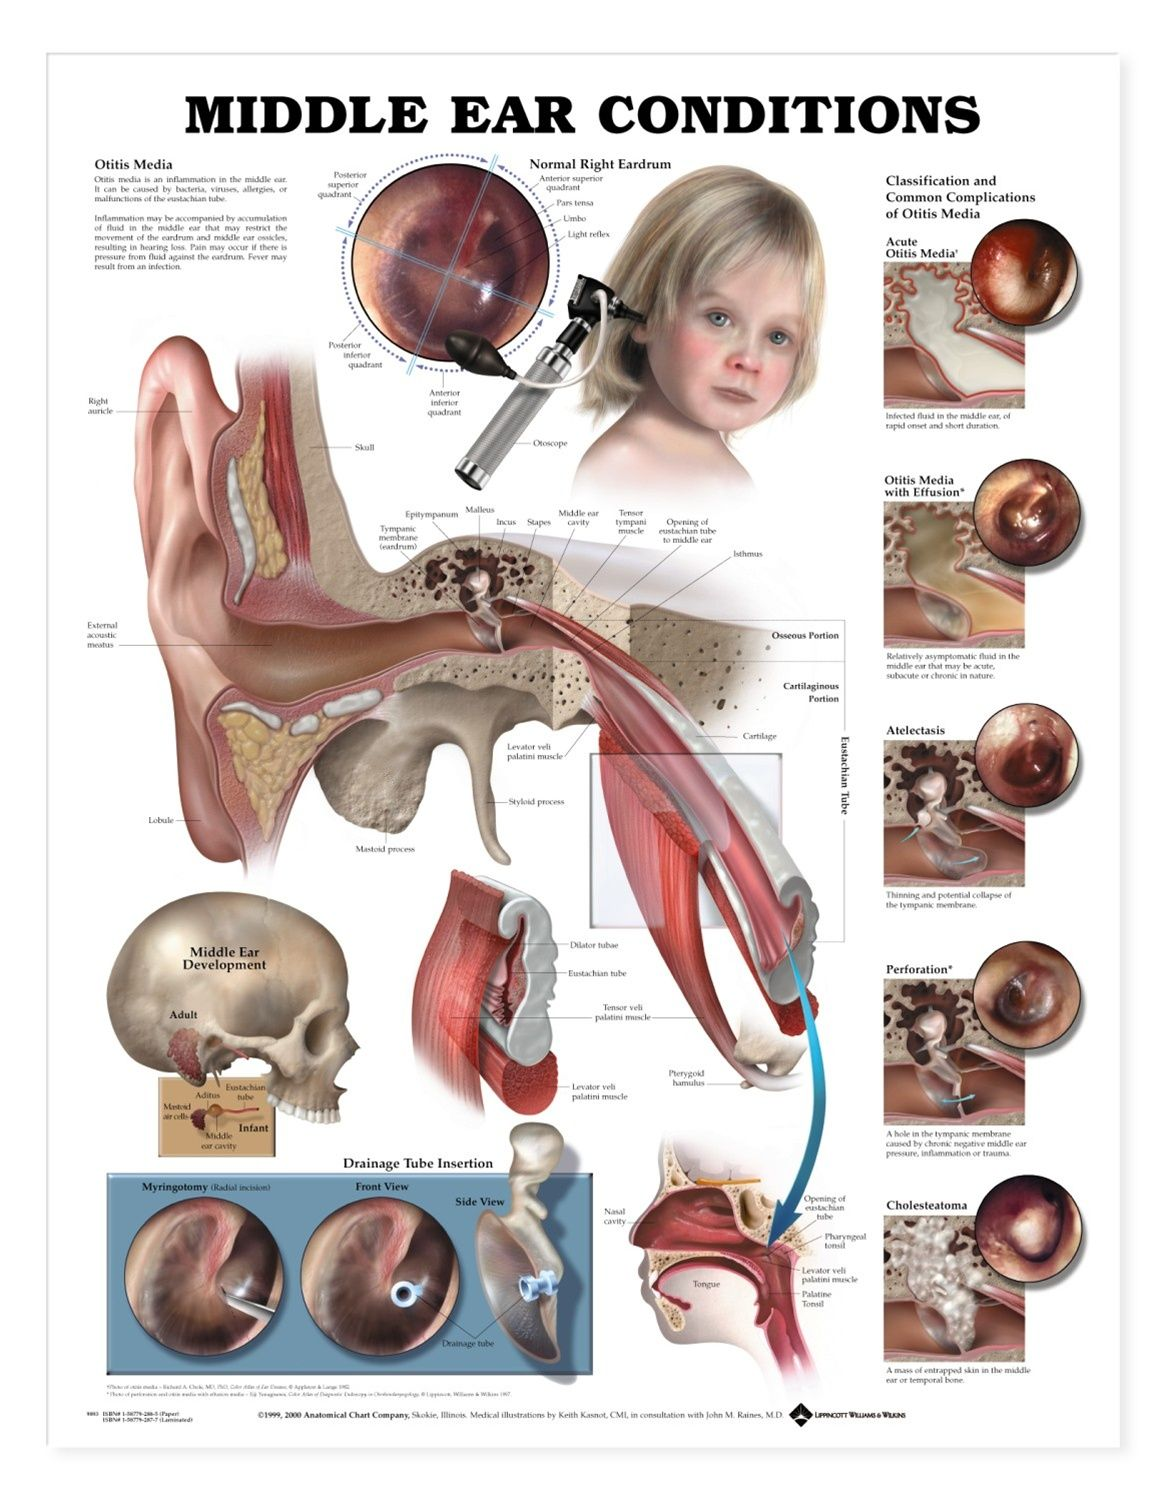 Ear Nose Throat Connection Diagram Wiring For 13 Pin Caravan Socket Best 25 43 Middle Ideas On Pinterest Wax Treatment